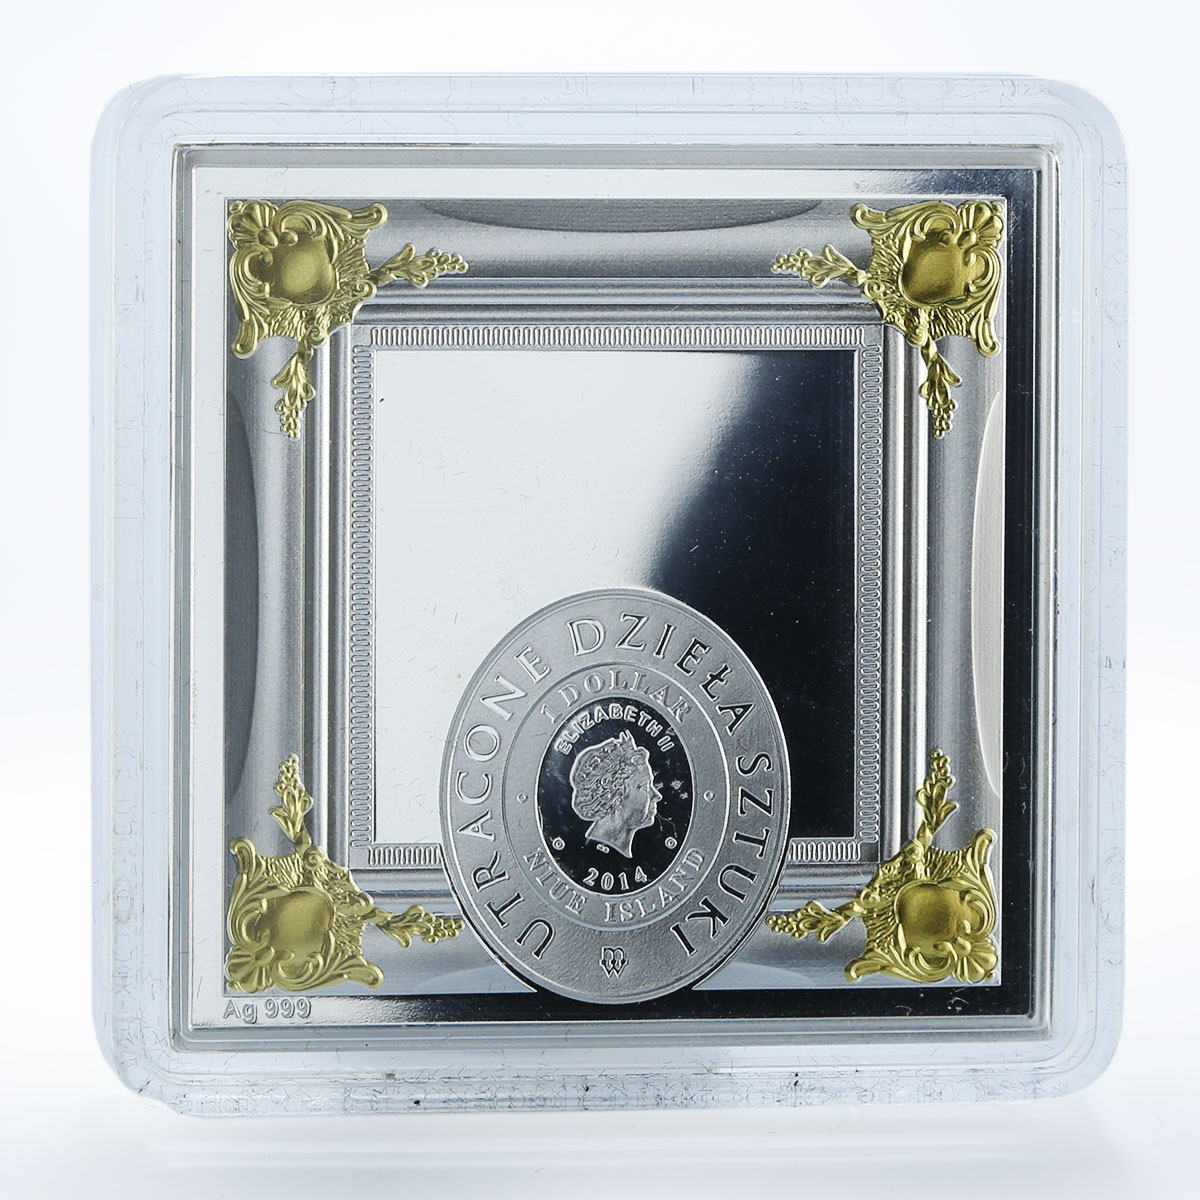 Niue 1 $ Portrait of a young man Raphael Santi silver proof swarovski coin 2014